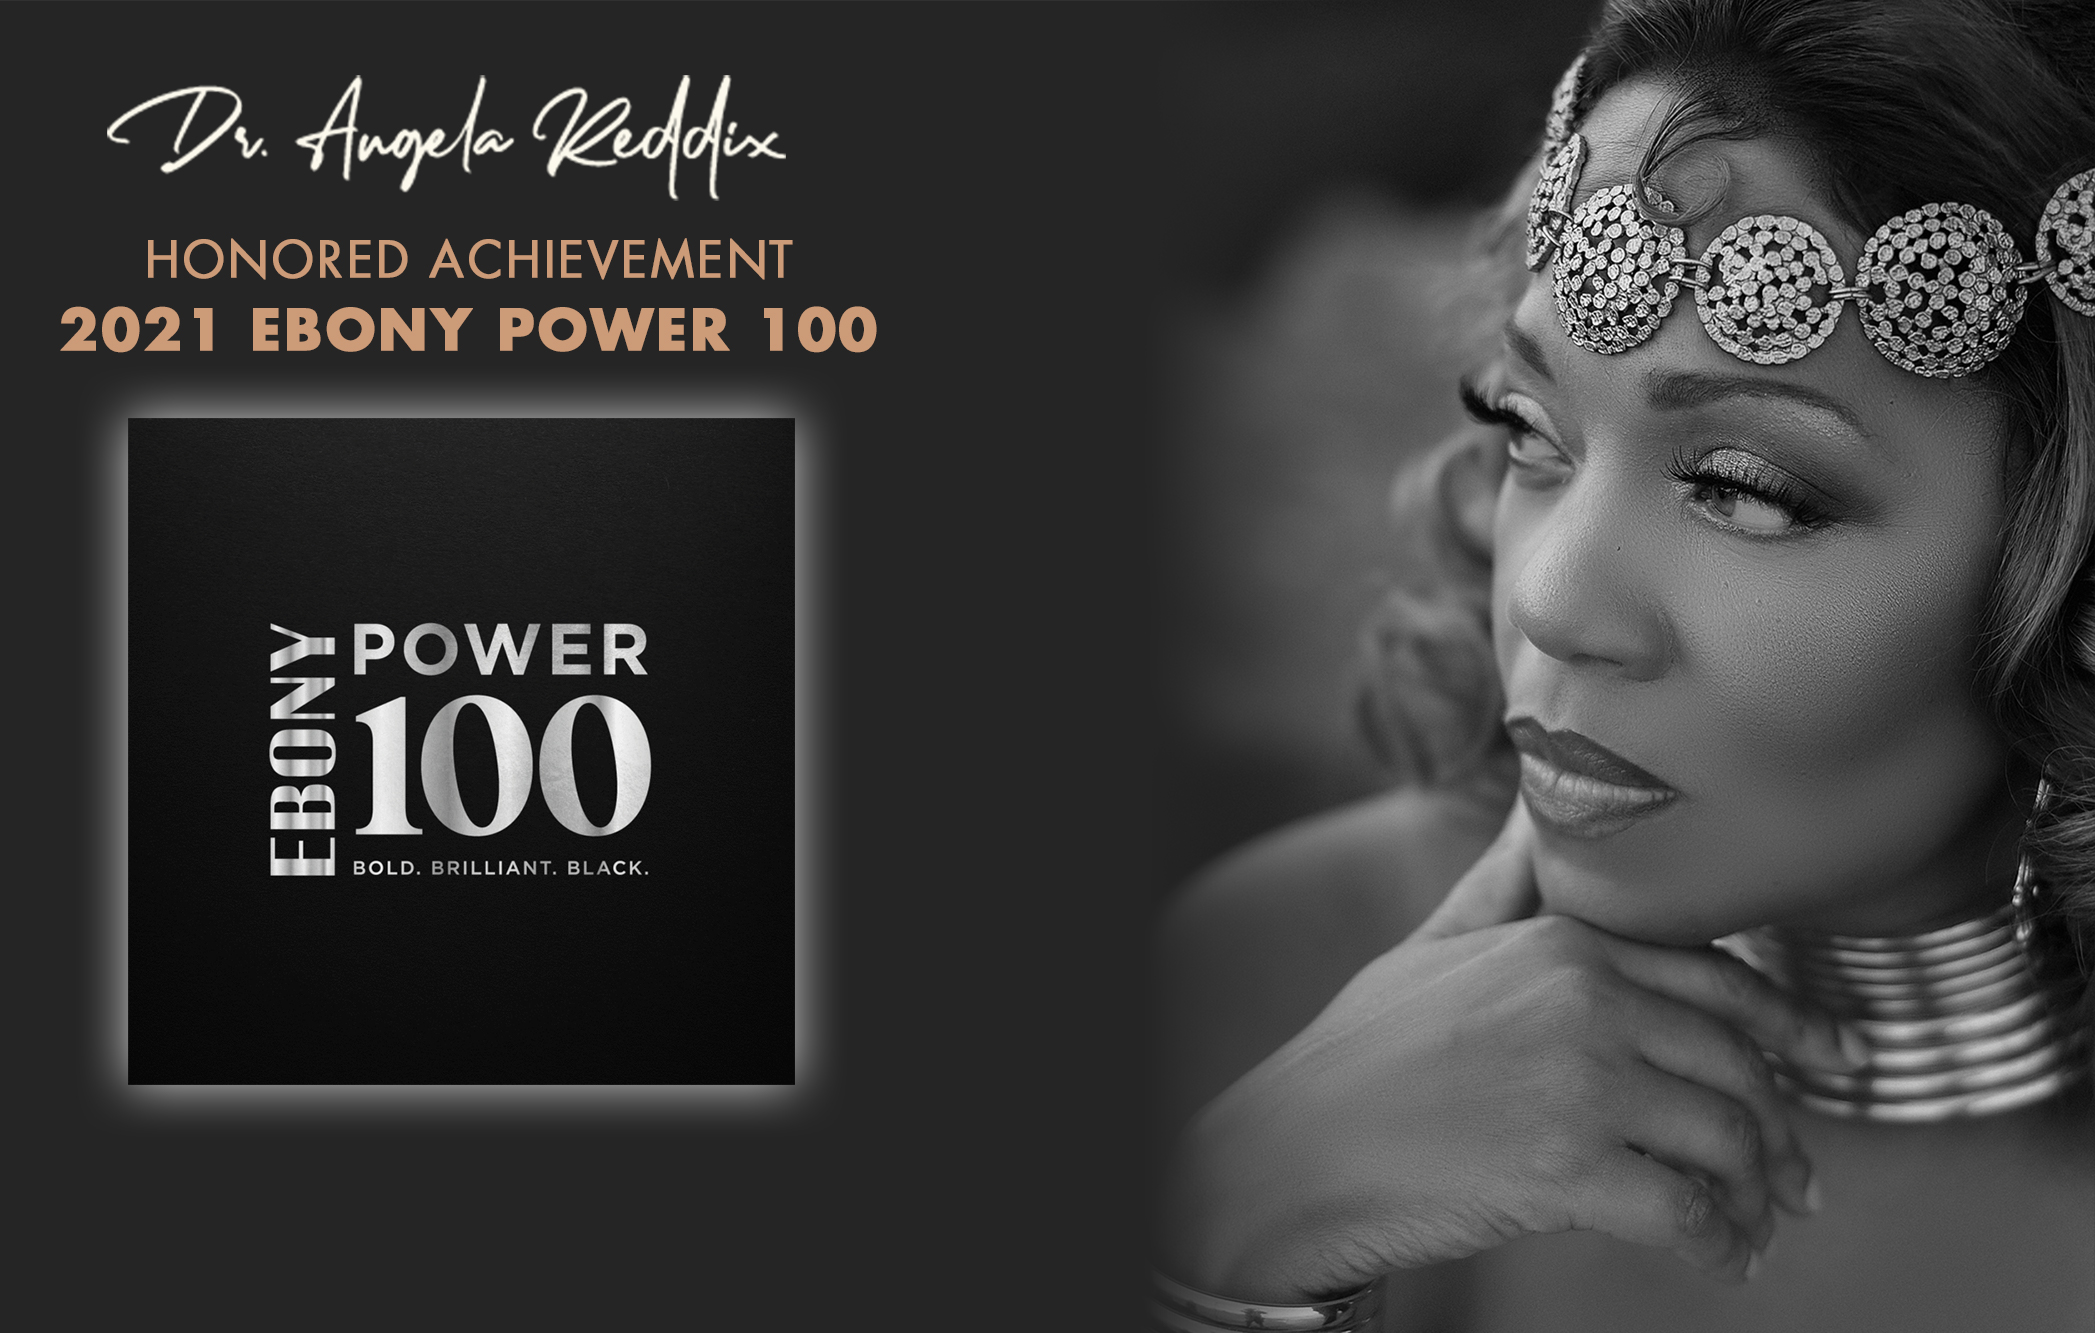 NEWS – This just in, Dr. Angela D. Reddix makes the Ebony Magazine Power 100 list